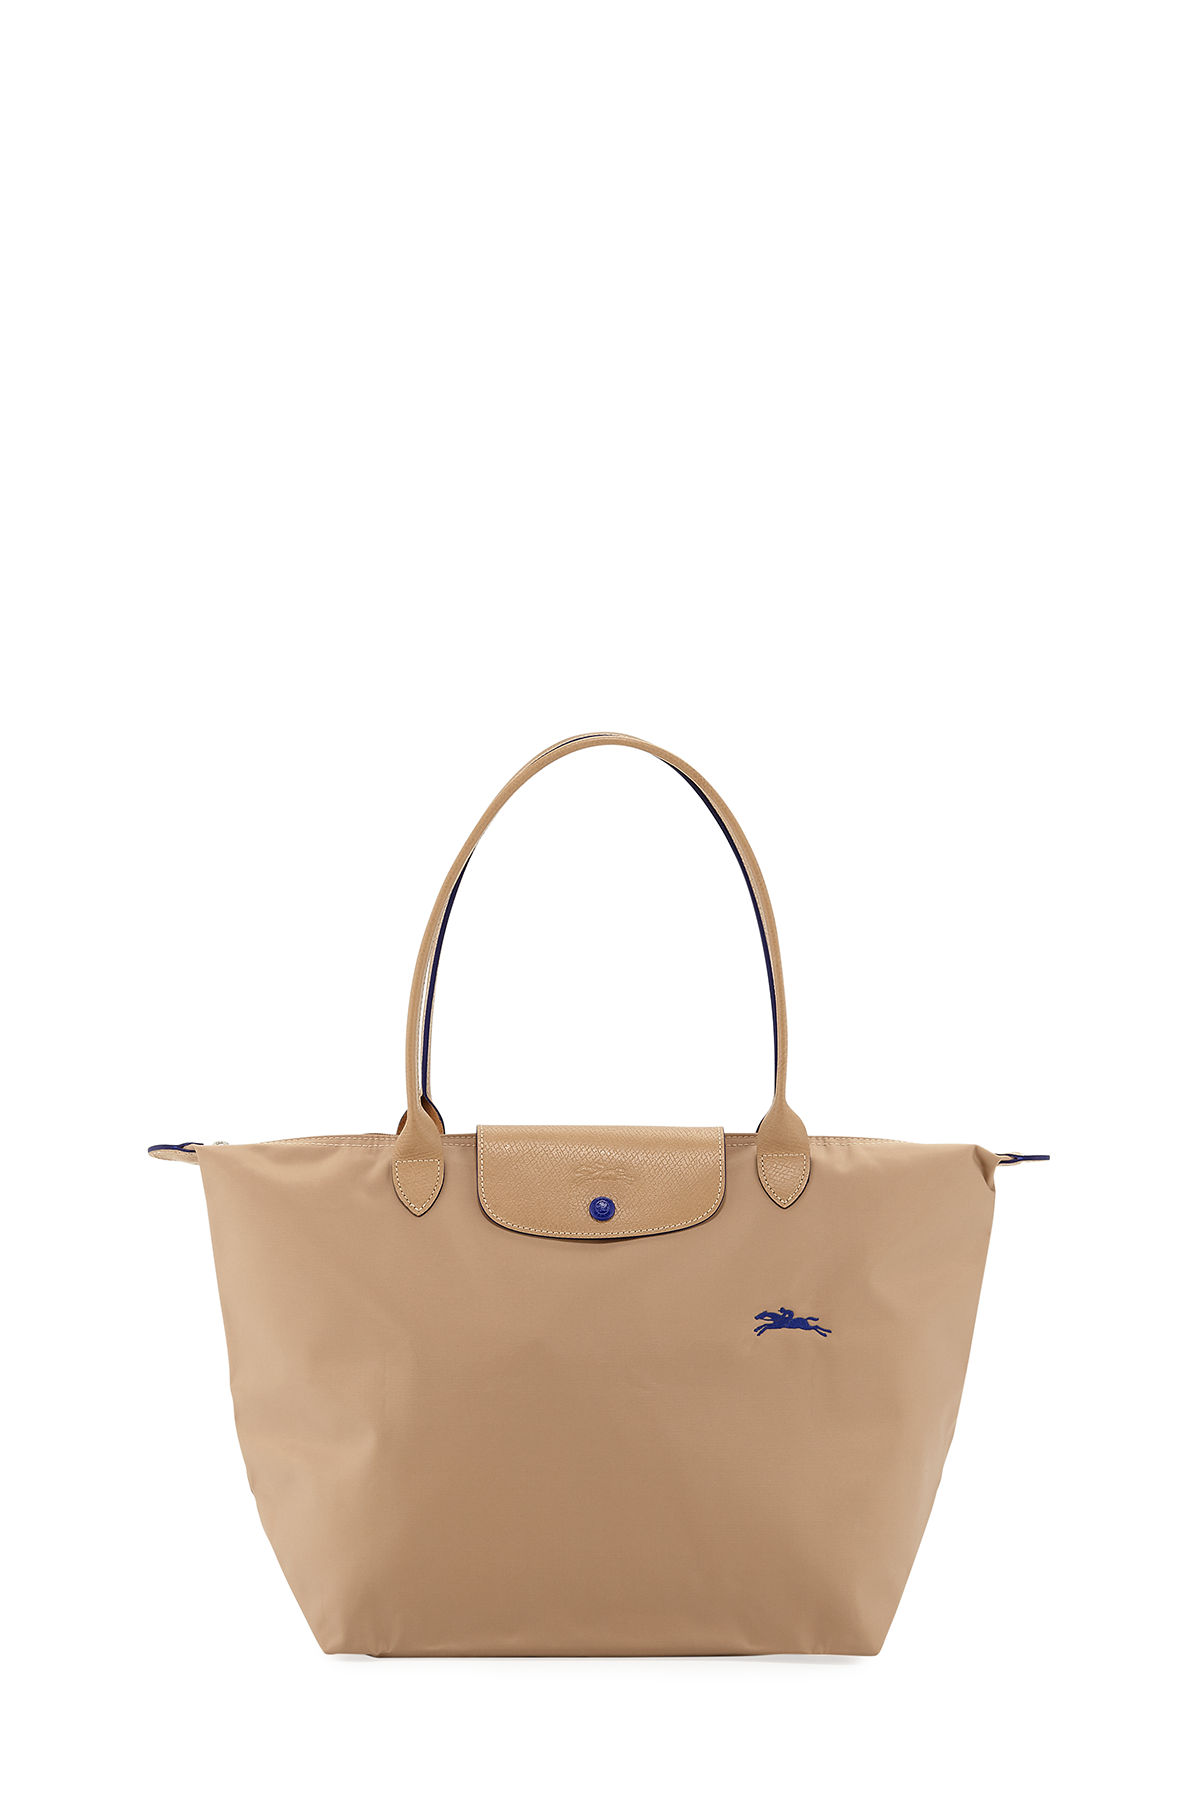 4912669f35db Longchamp Le Pliage Club Large Nylon Shoulder Tote Bag